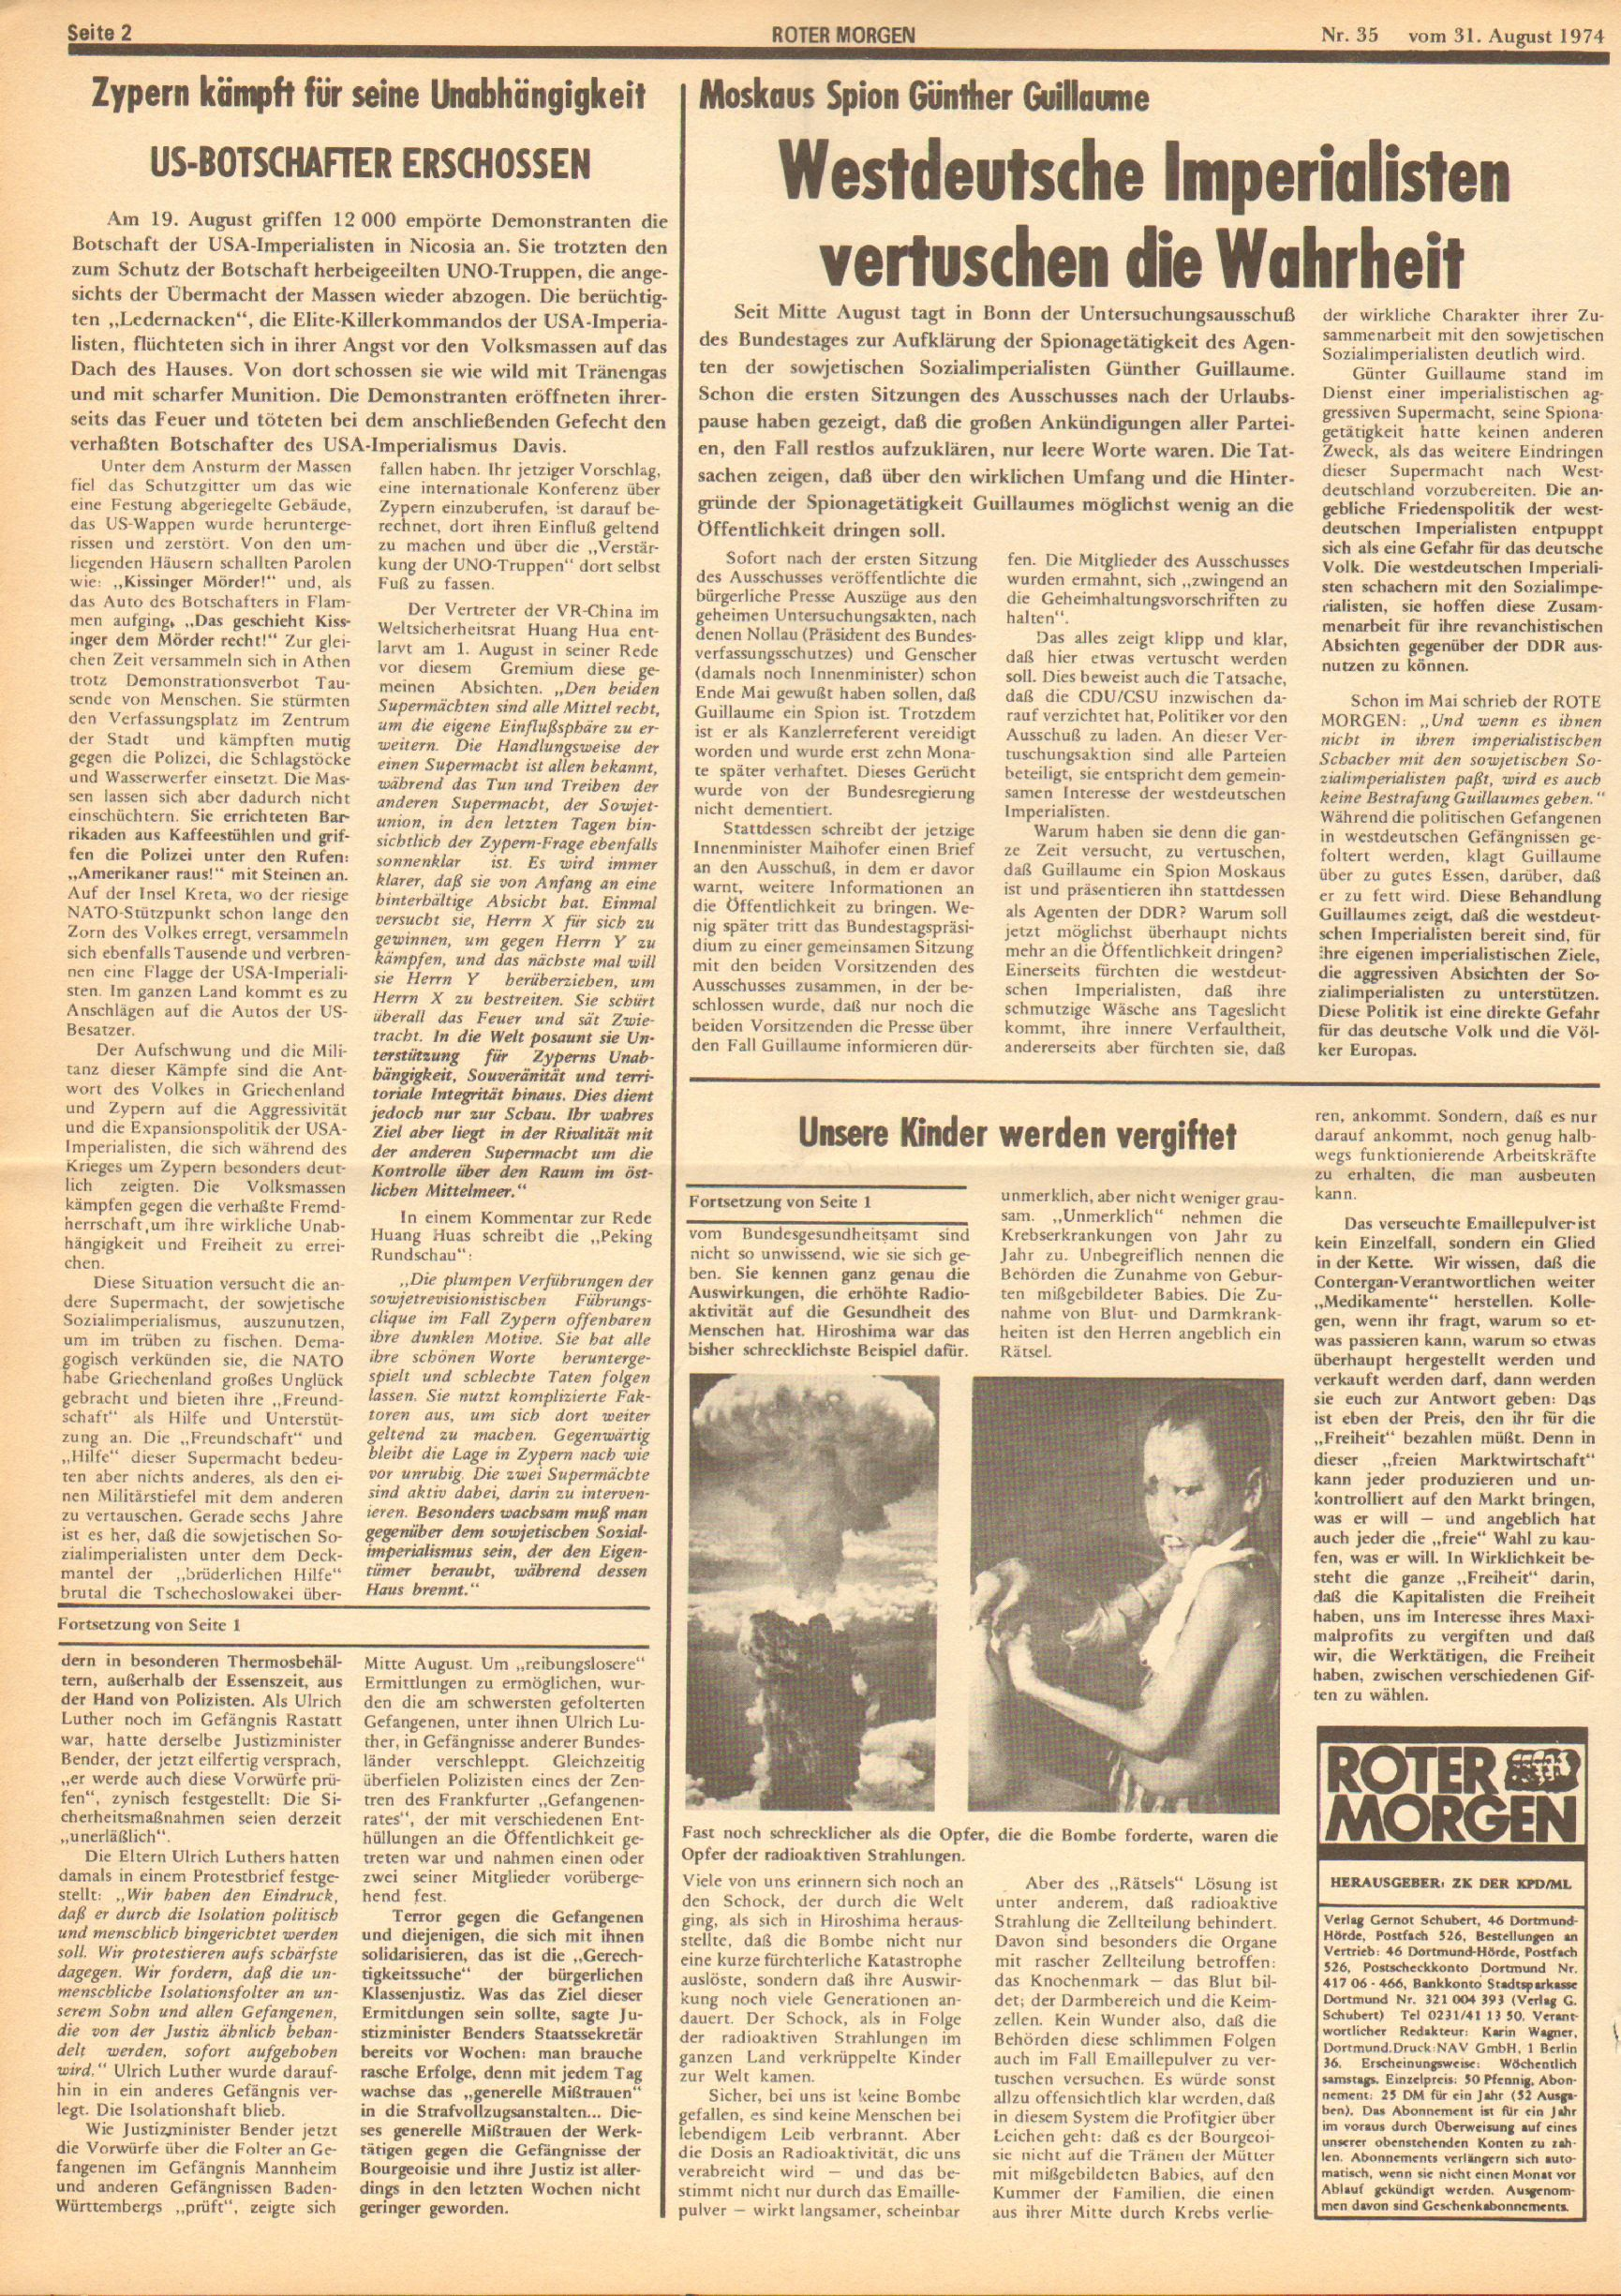 Roter Morgen, 8. Jg., 31. August 1974, Nr. 35, Seite 2